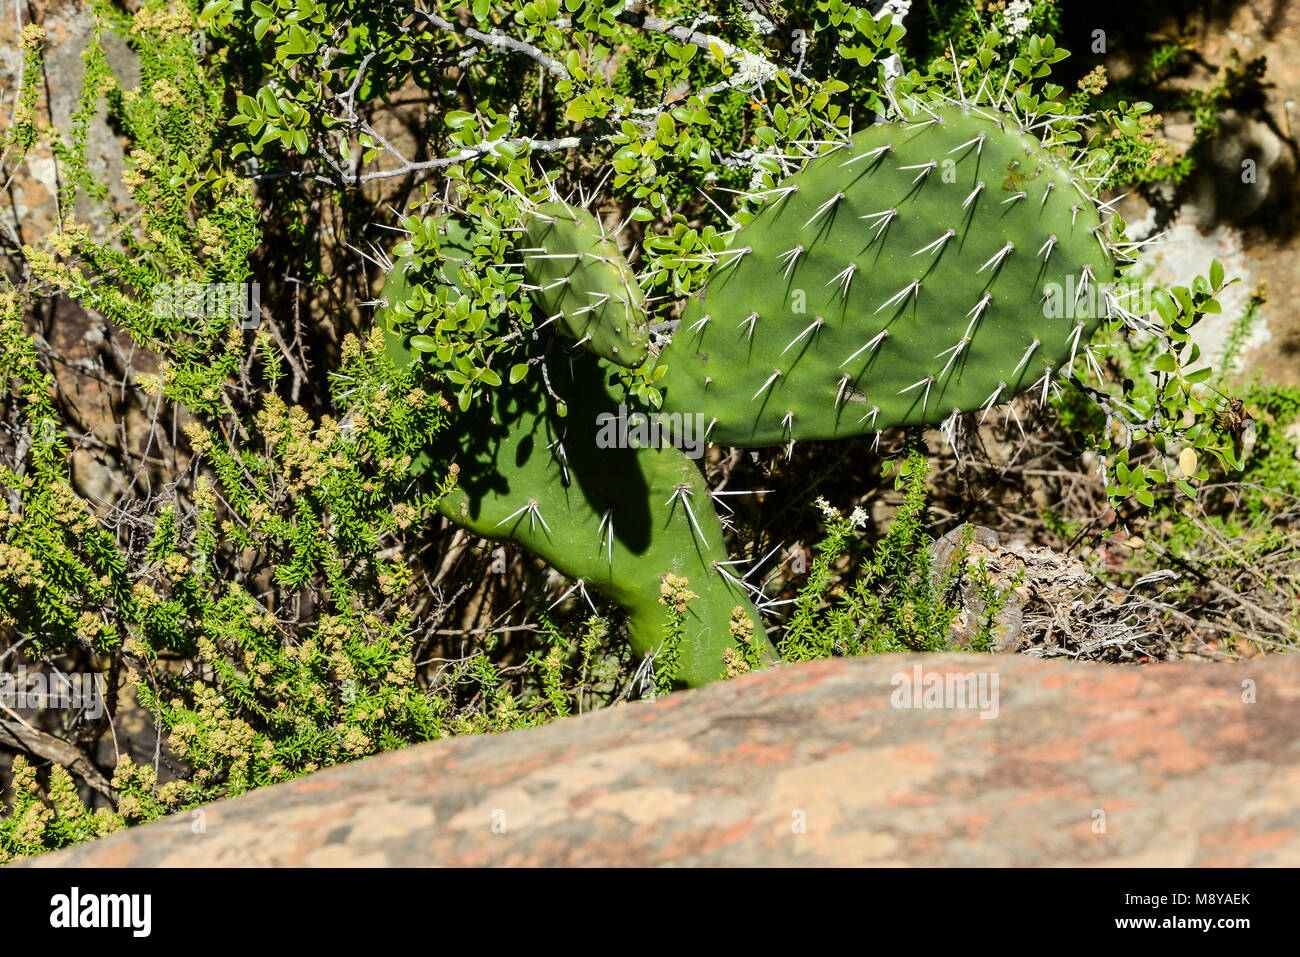 An optunia cactus growing at The Valley of Desolation, South Africa - Stock Image